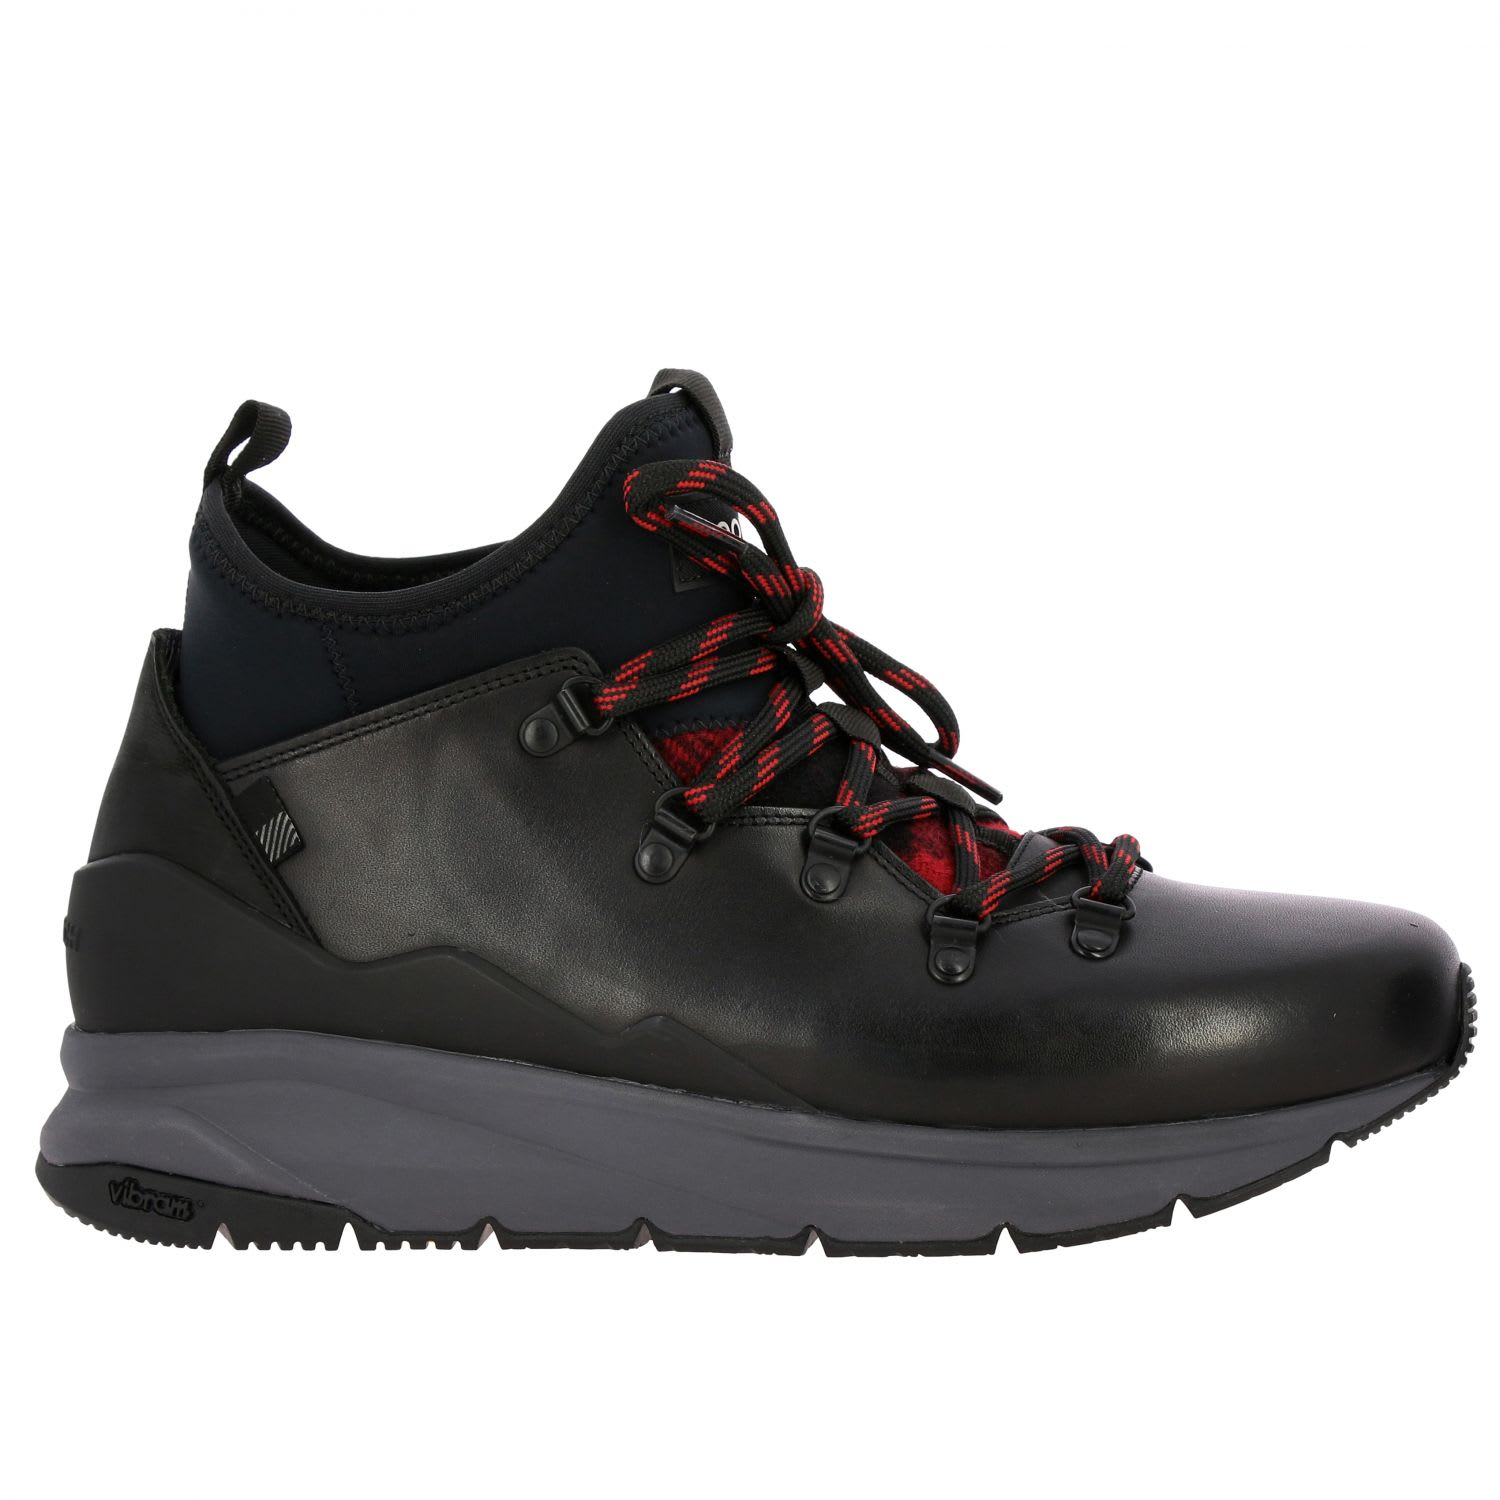 Woolrich Sneakers Woolrich Boots In Leather And Neoprene With Trekking Laces